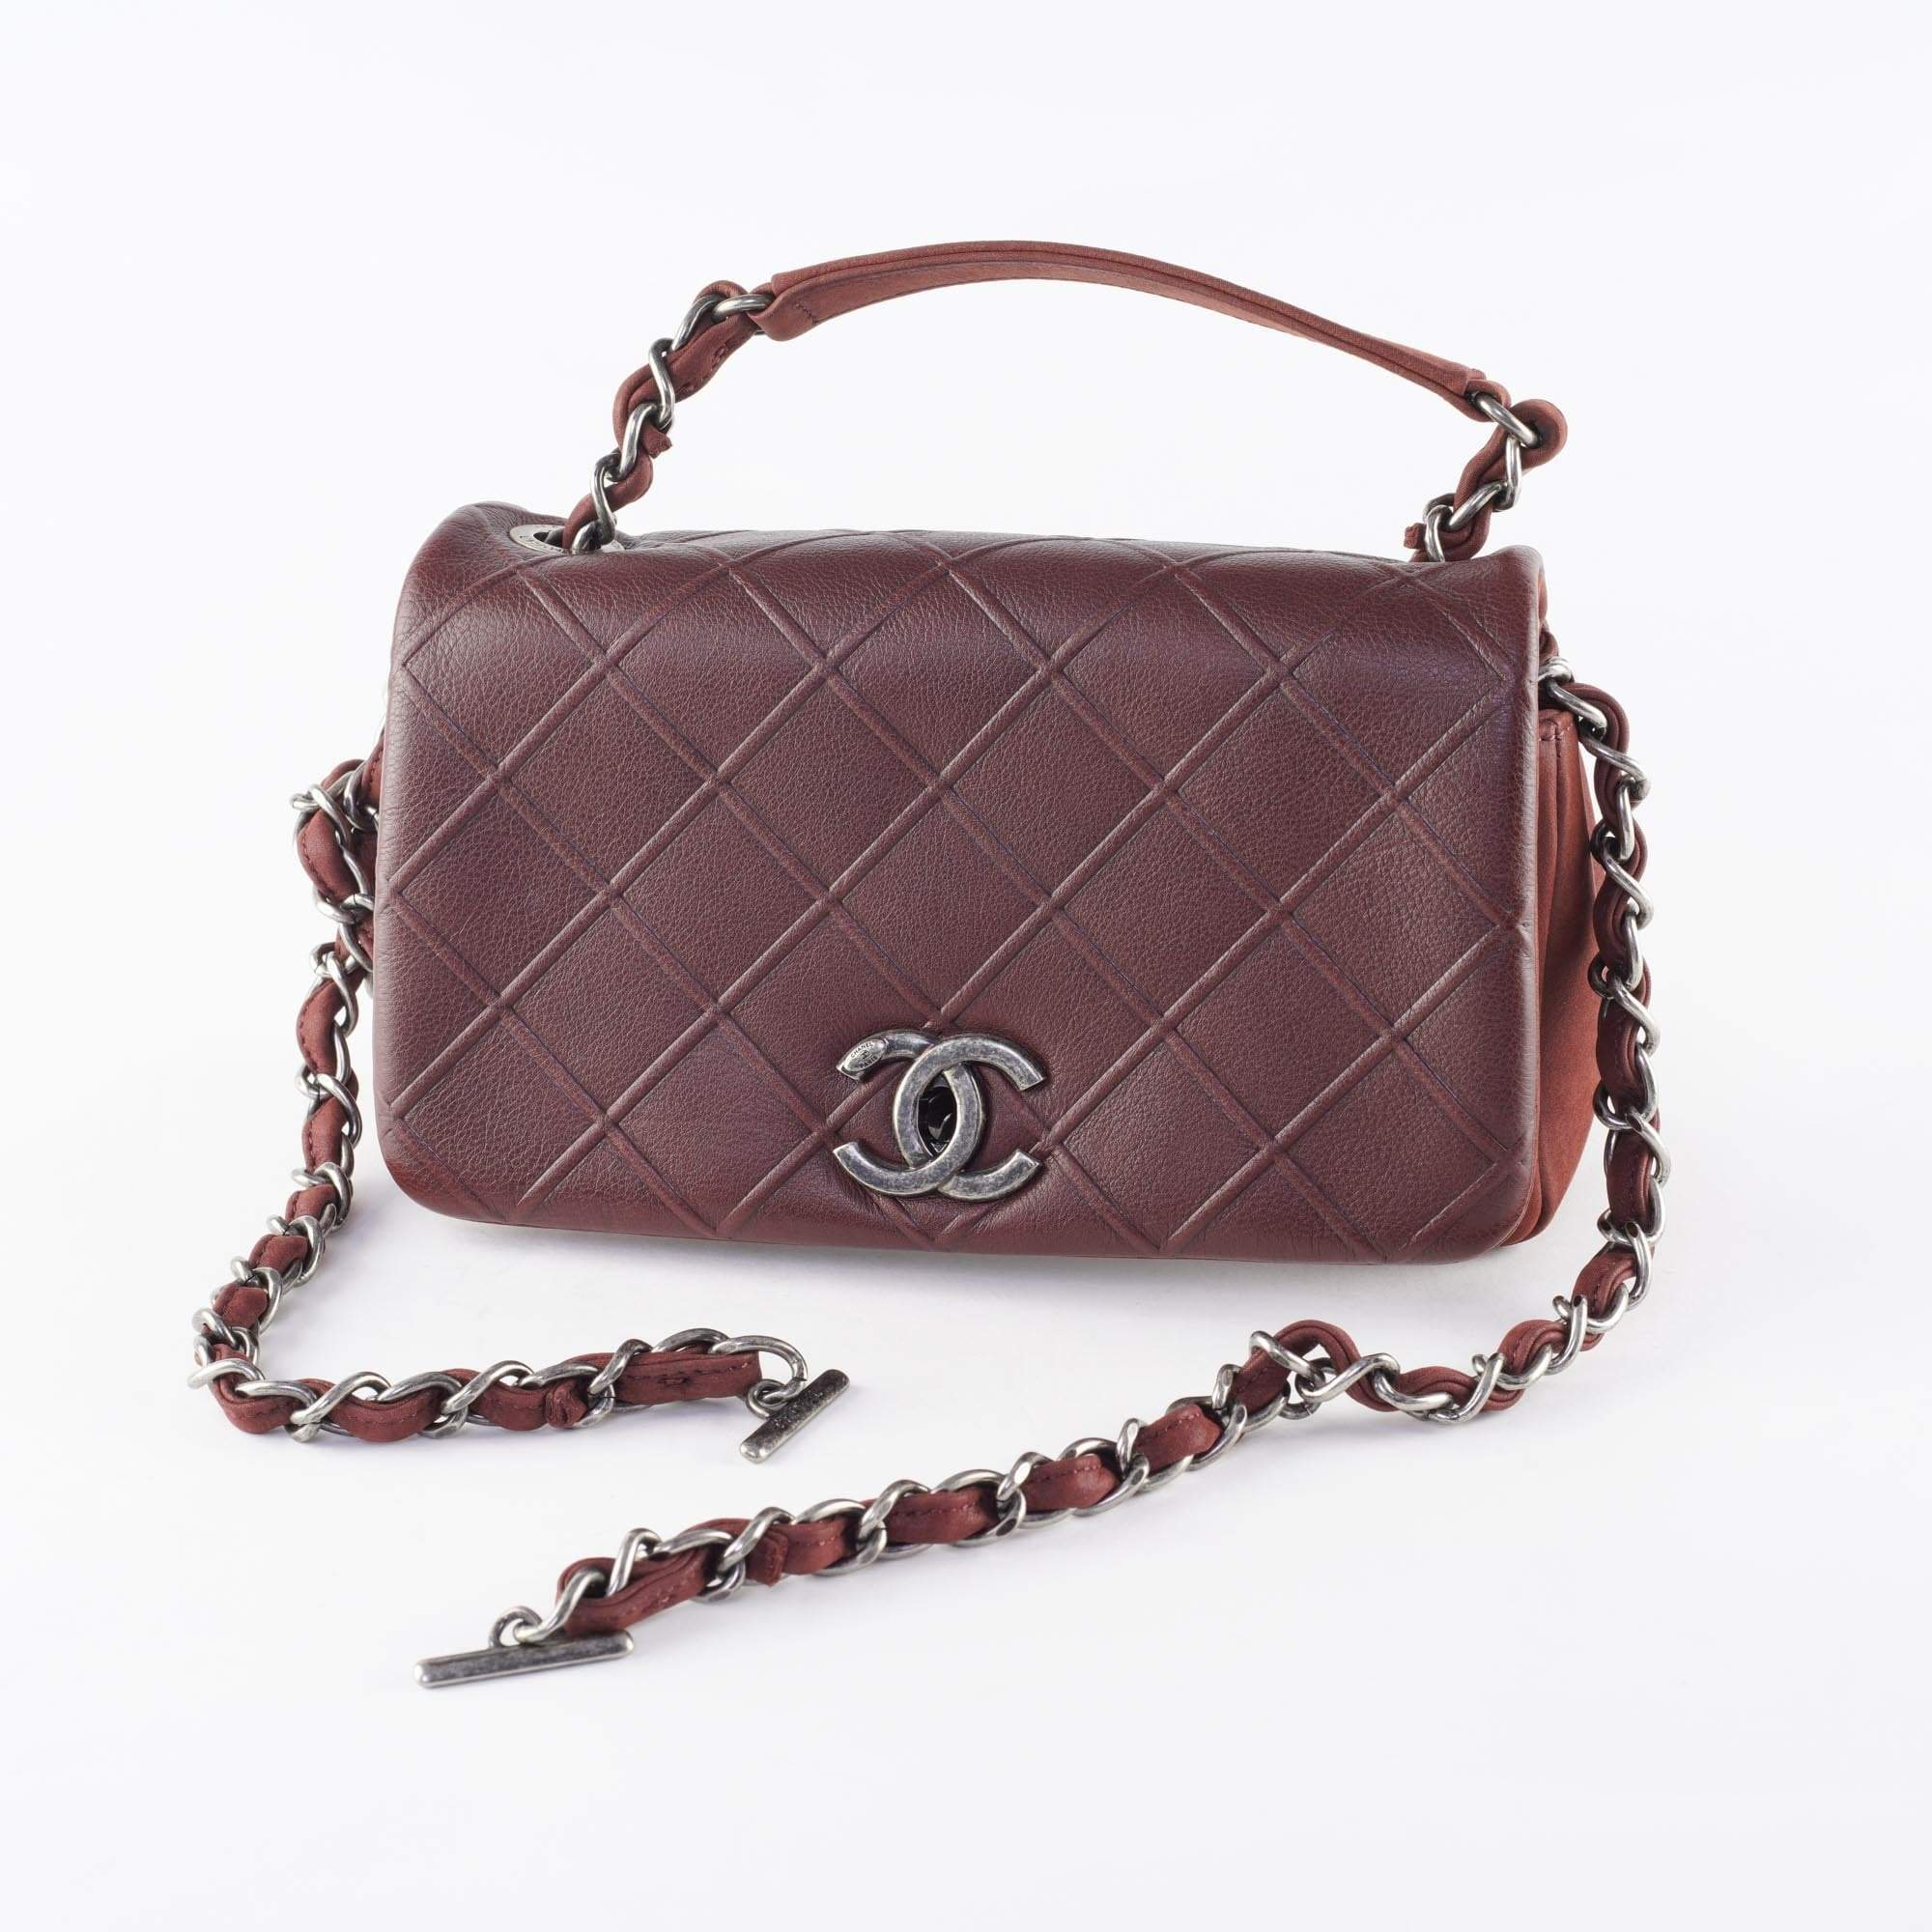 Chanel Burgundy Small Crossbody Quilted Flap Bag